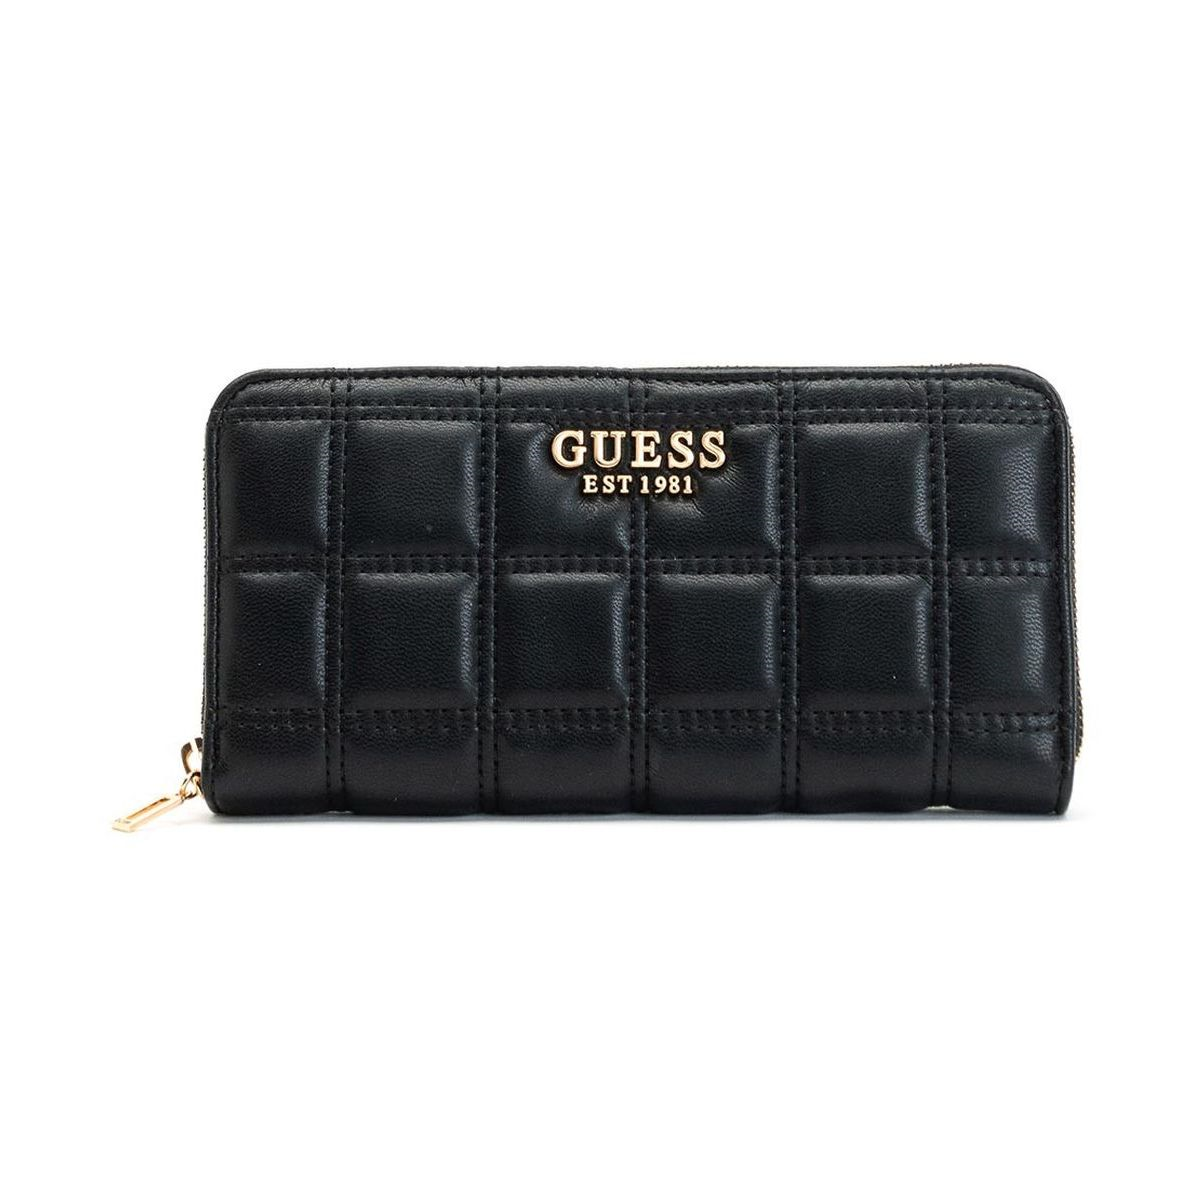 Guess femme kamina slg large zip around noir